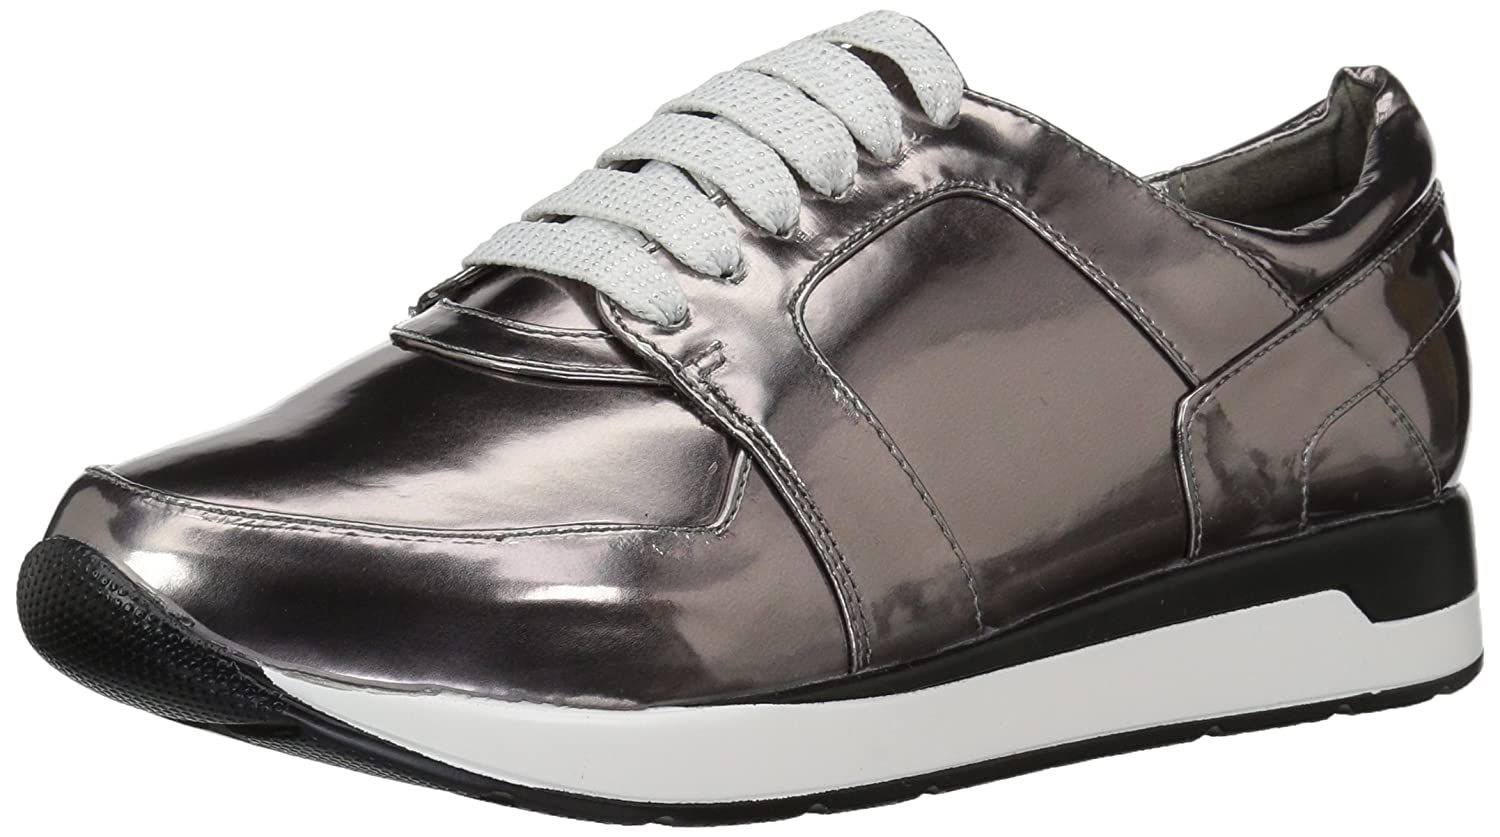 Penny Loves Kenny Women's Techno Fashion Sneaker B073VTBSWR 11 W US|Pewter Metallic